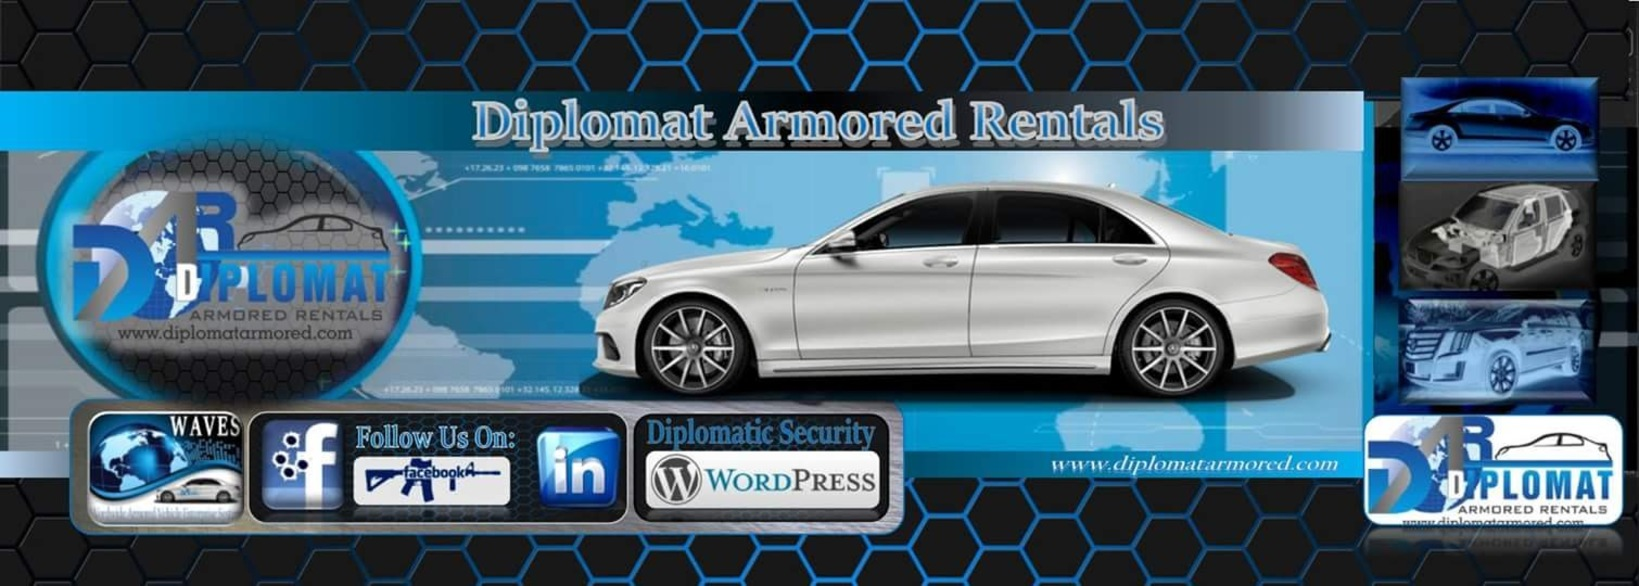 Armored Cars for Rent from Diplomat Armored Rentals